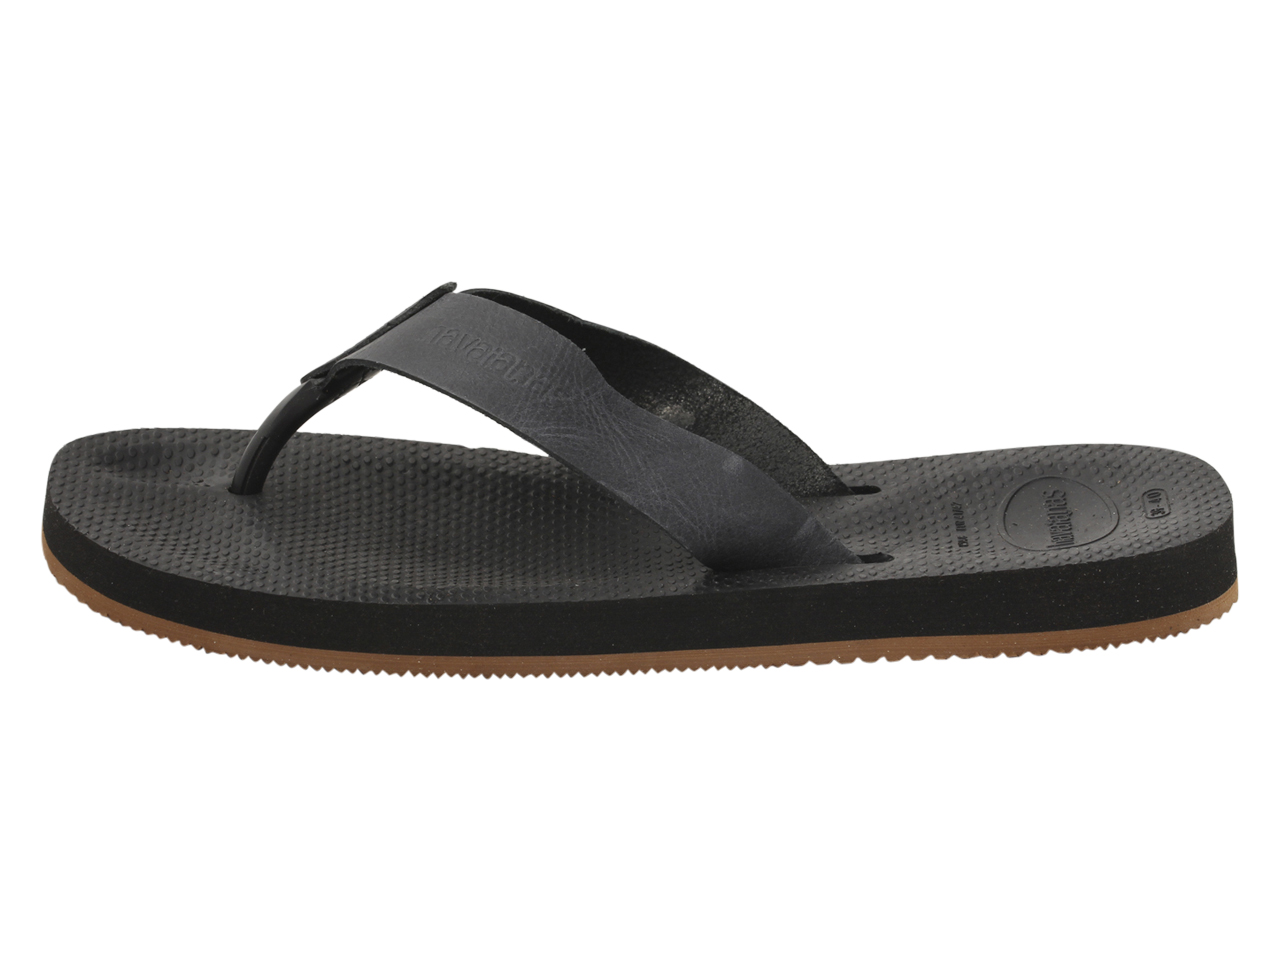 Havaianas Men/'s Urban Special Flip Flops Sandals Shoes